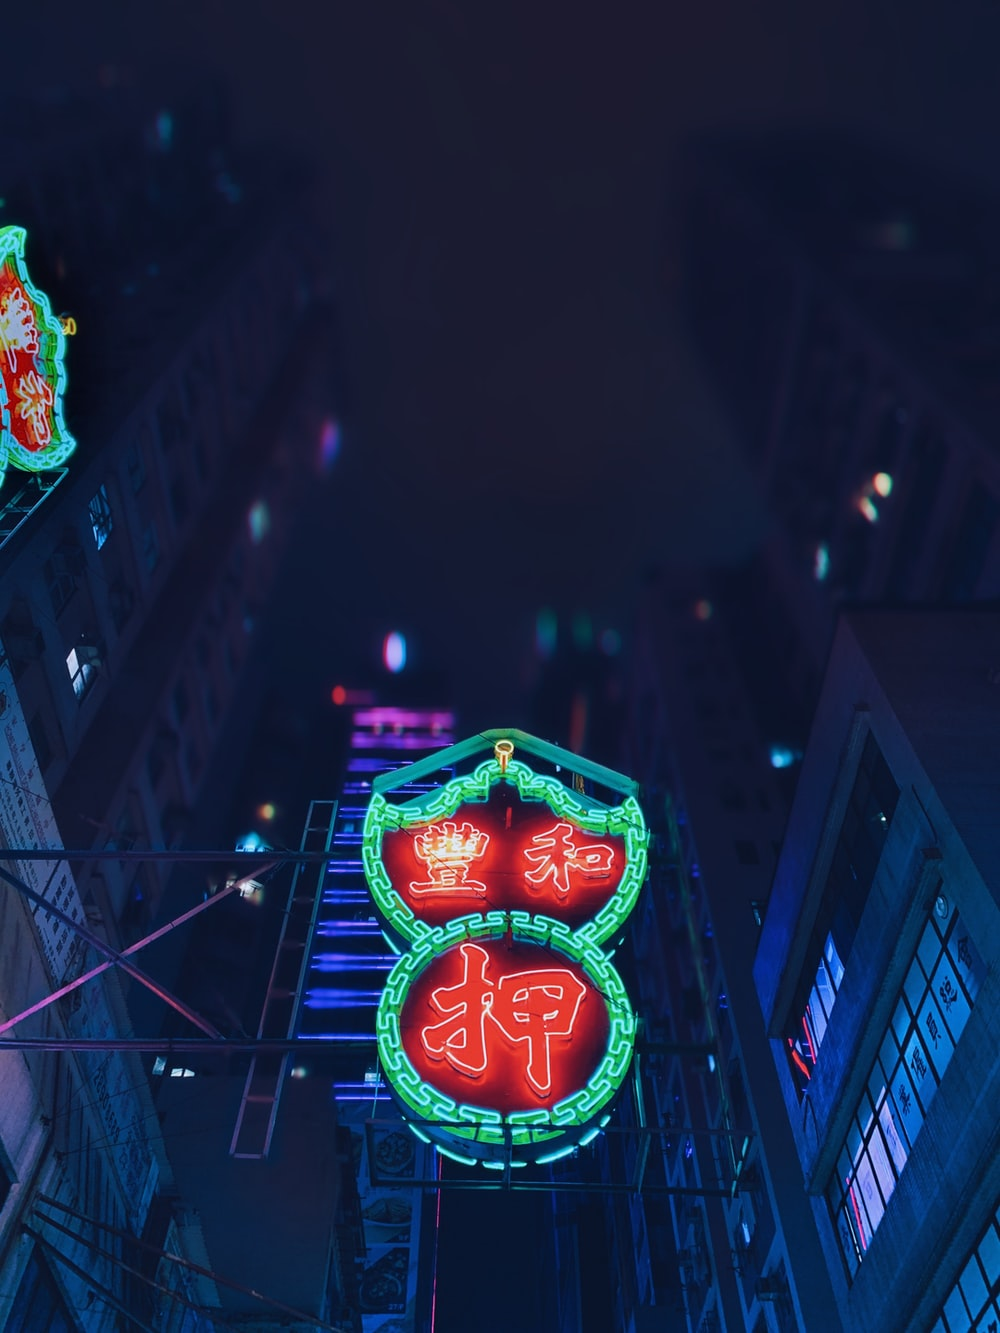 red and green led signage